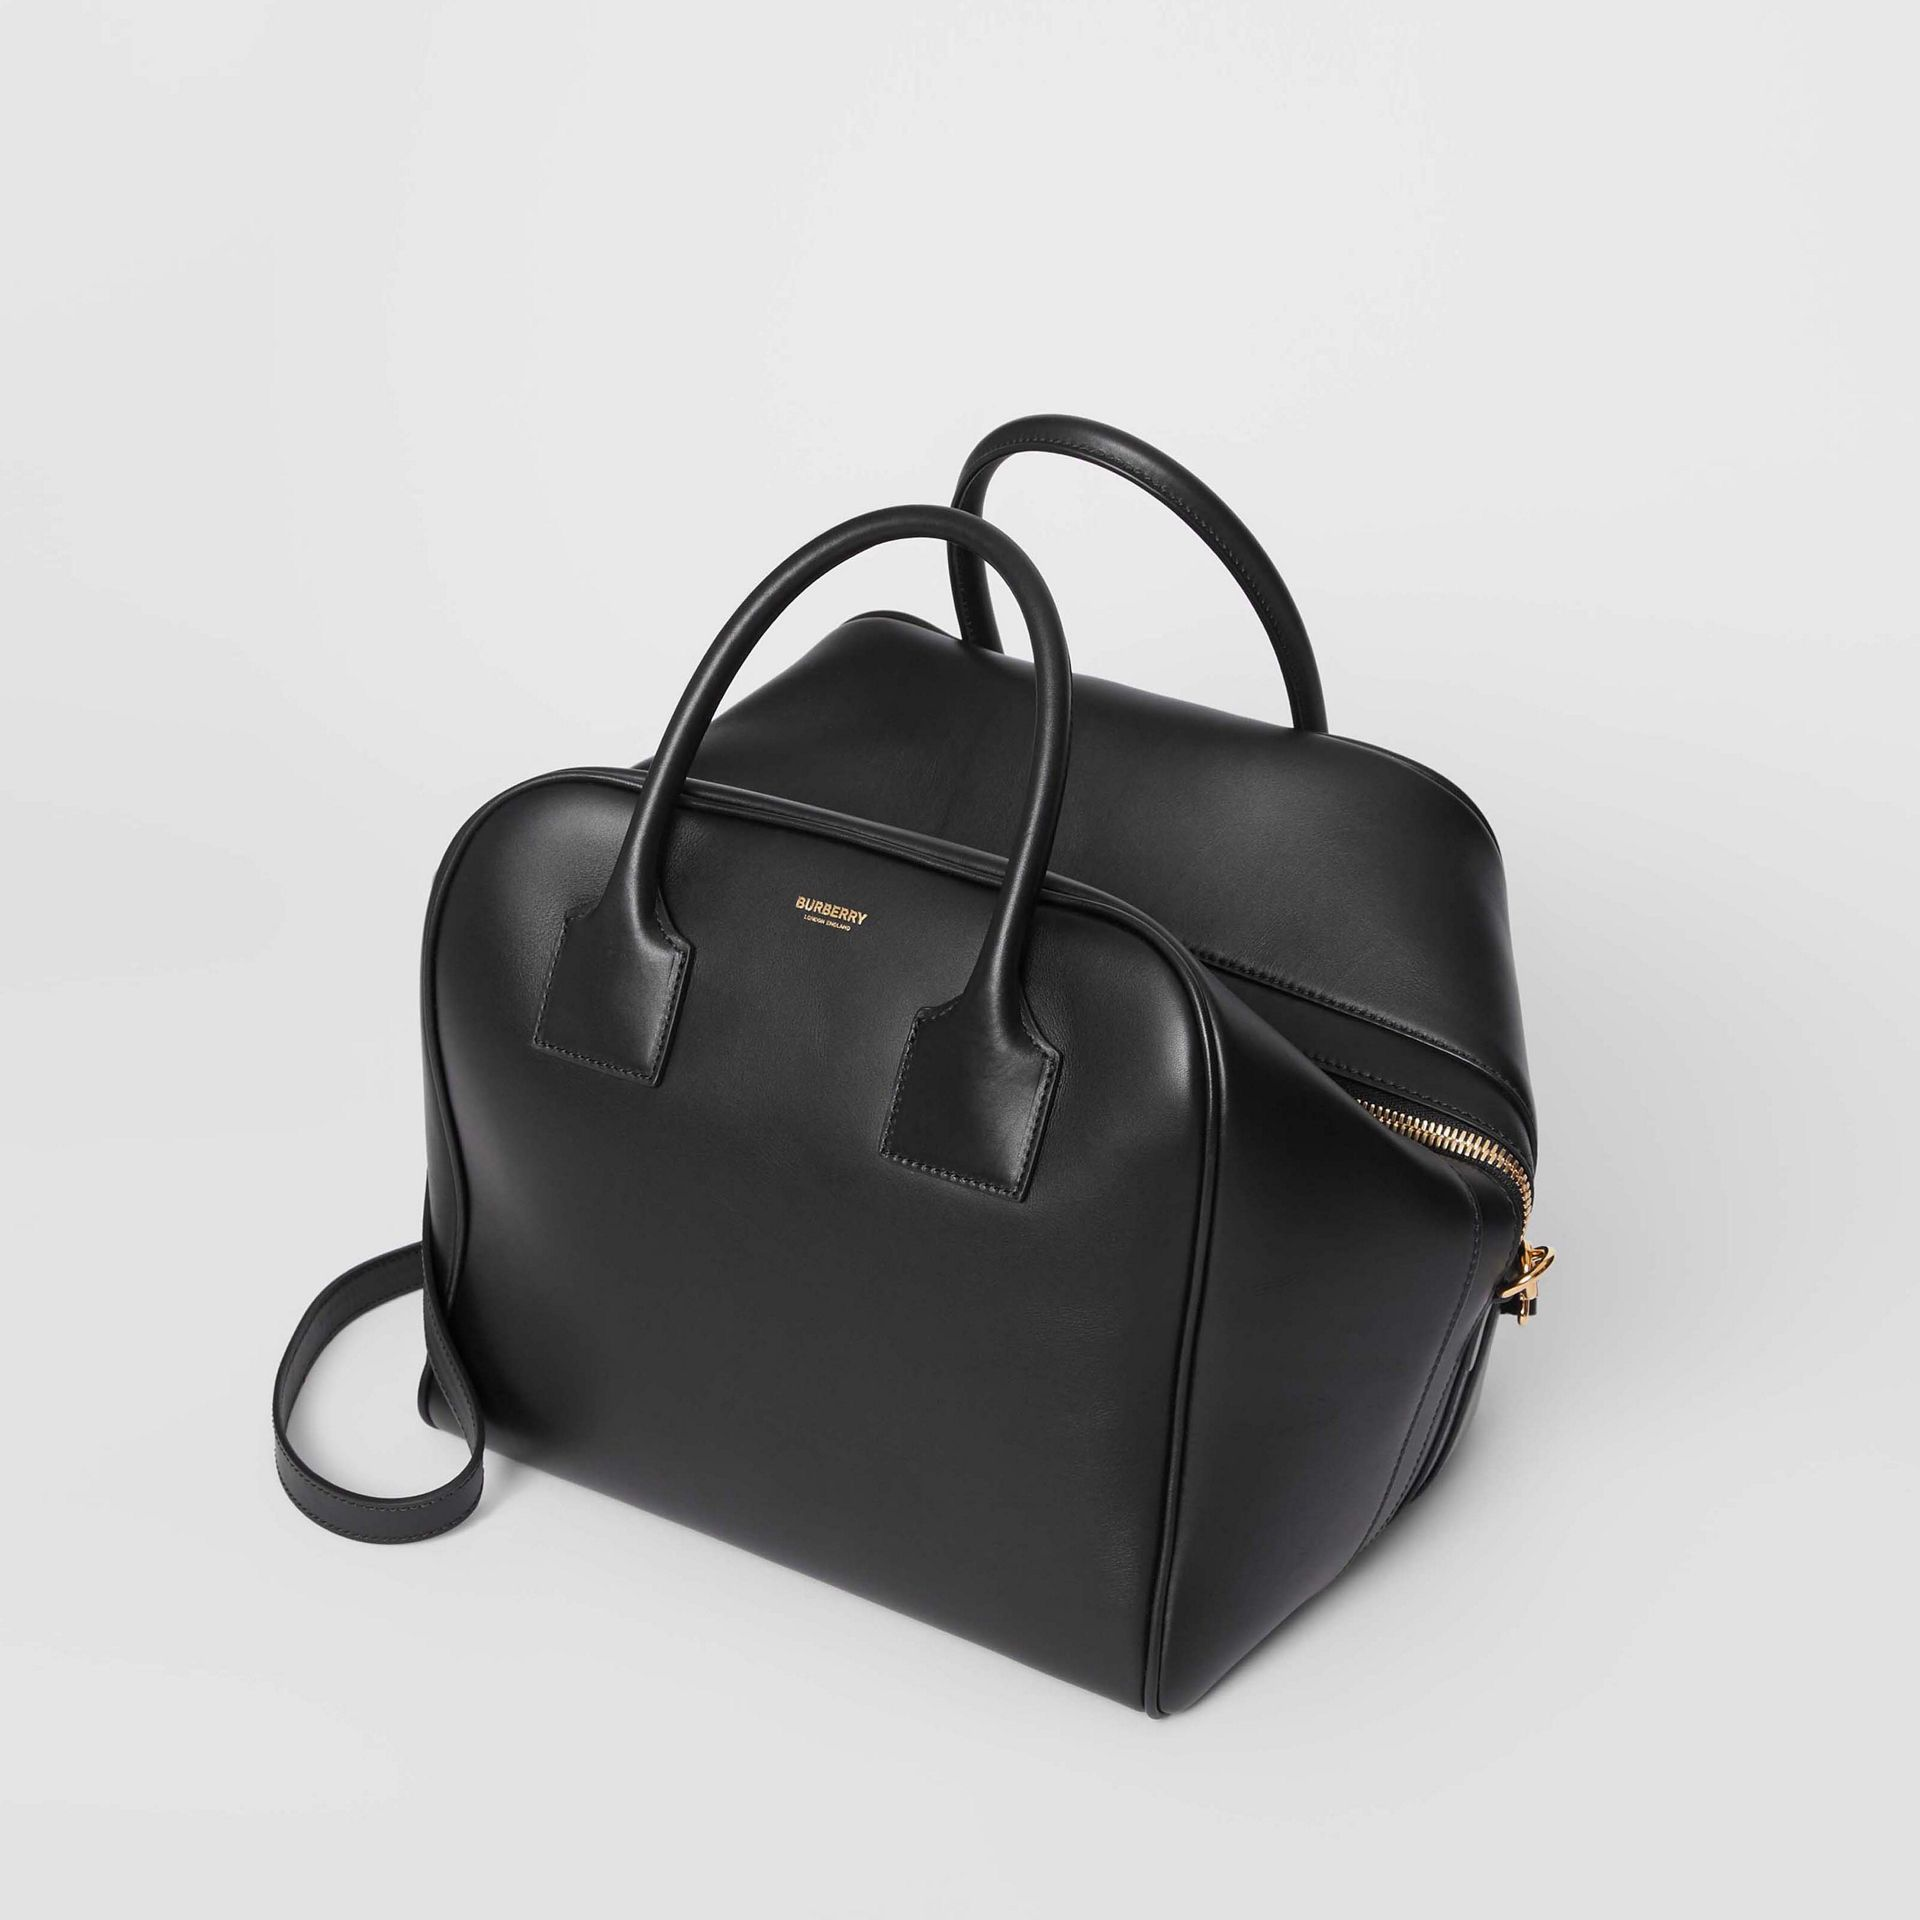 Medium Leather Cube Bag in Black - Women | Burberry Hong Kong - gallery image 3